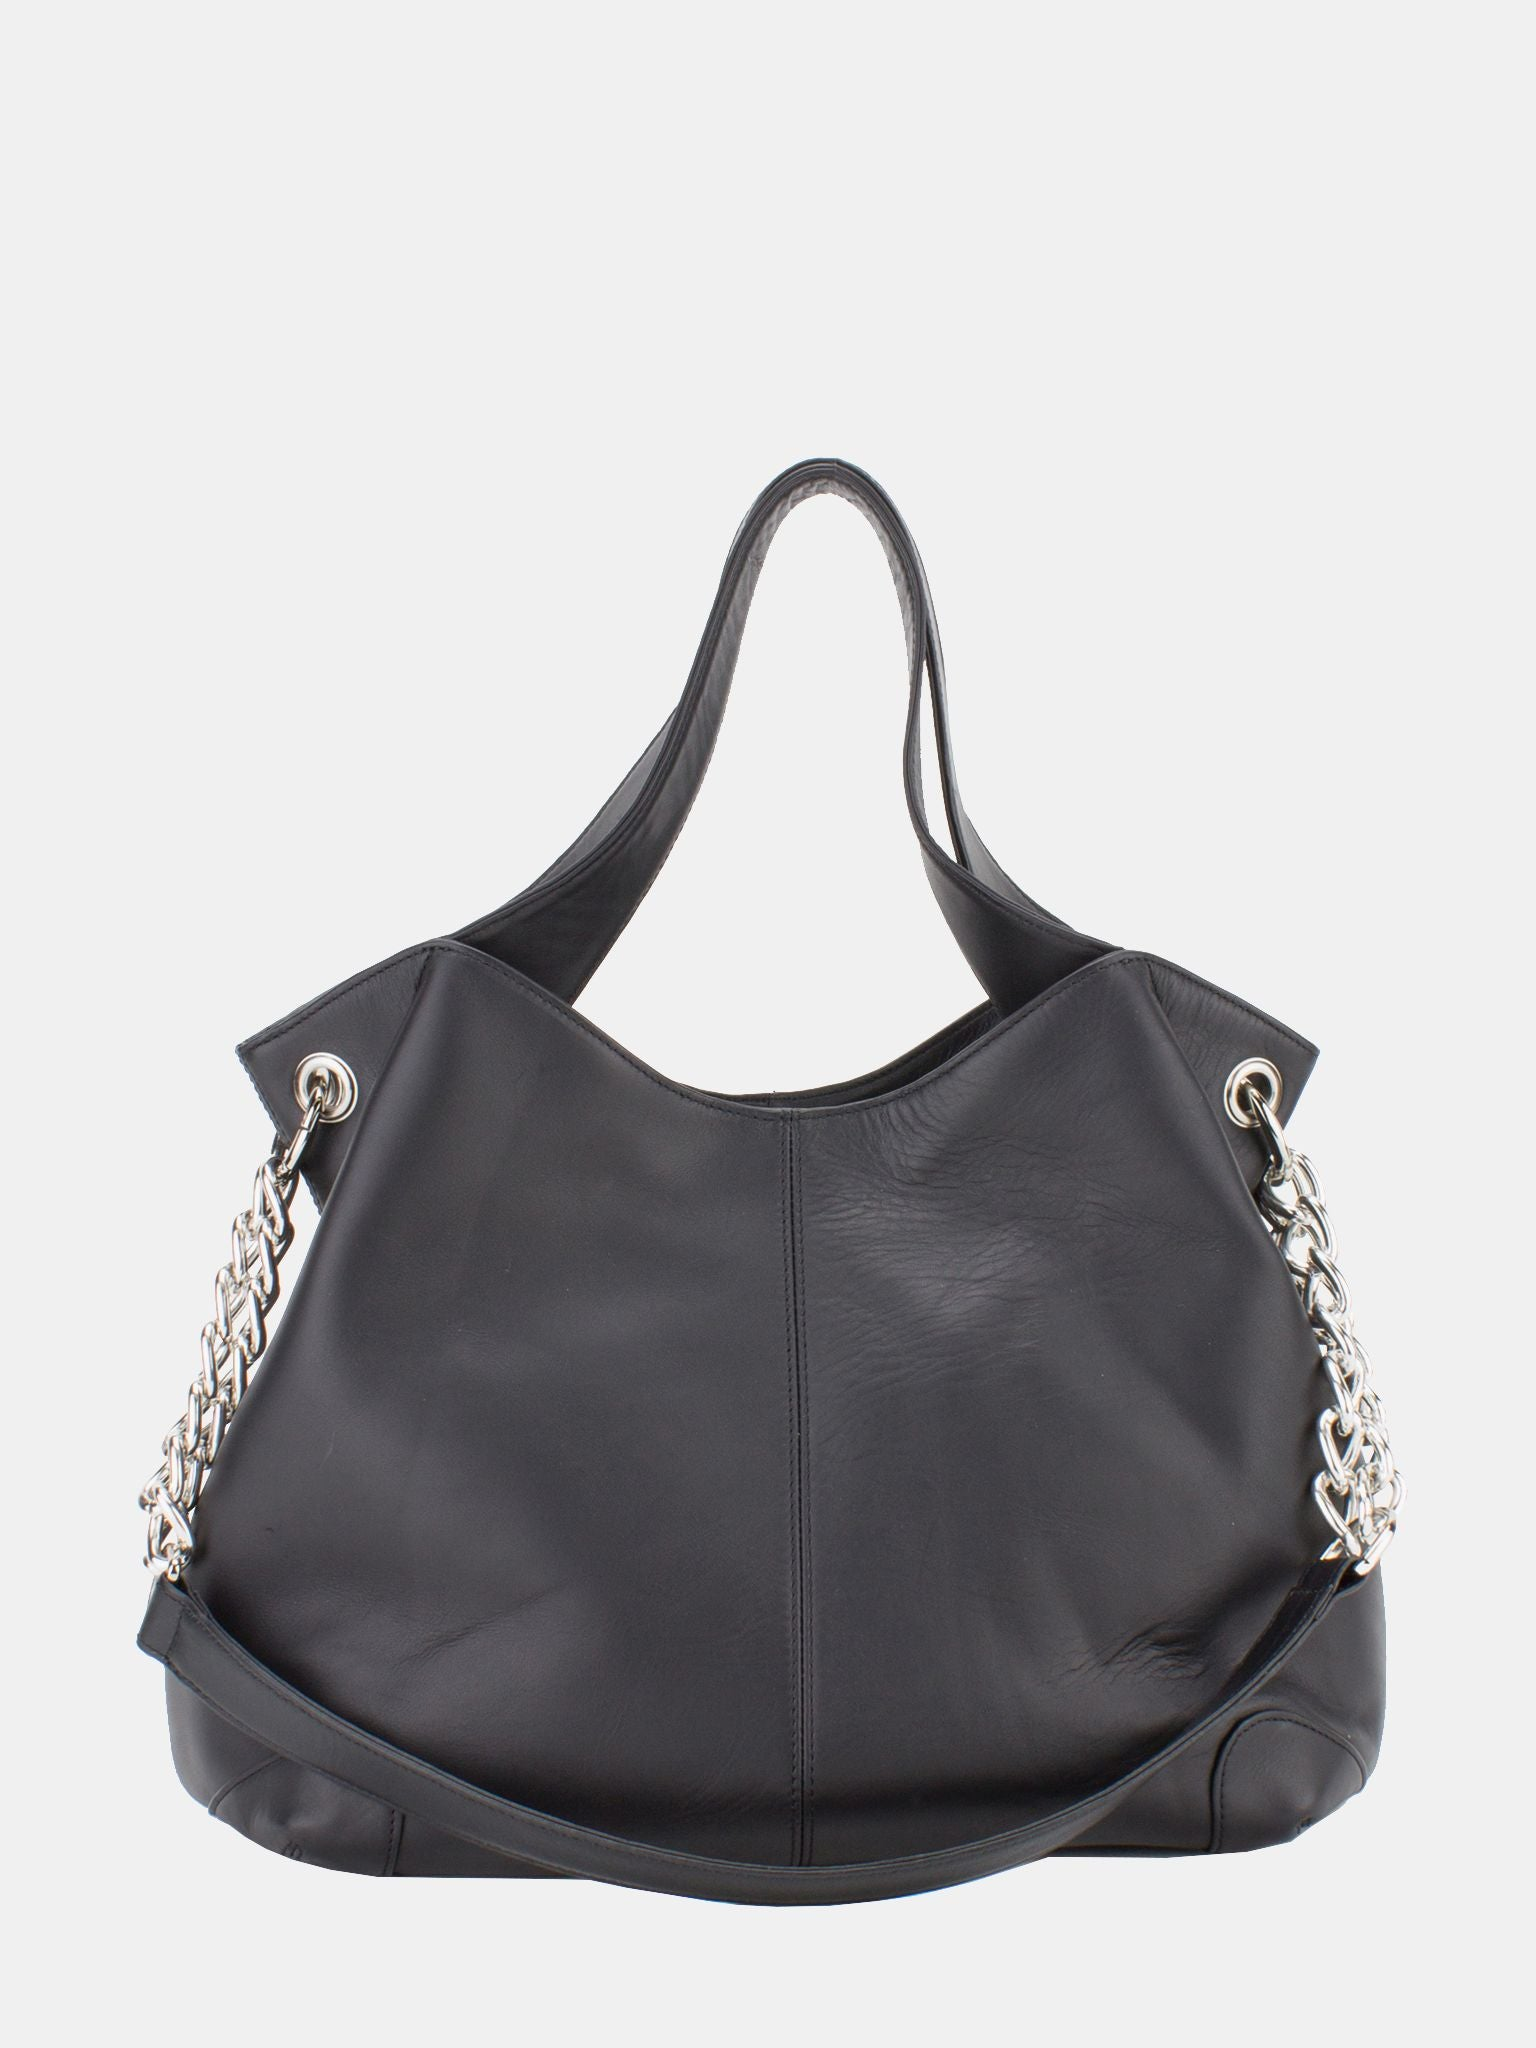 Sharon Chain Accent Leather Bag - Black